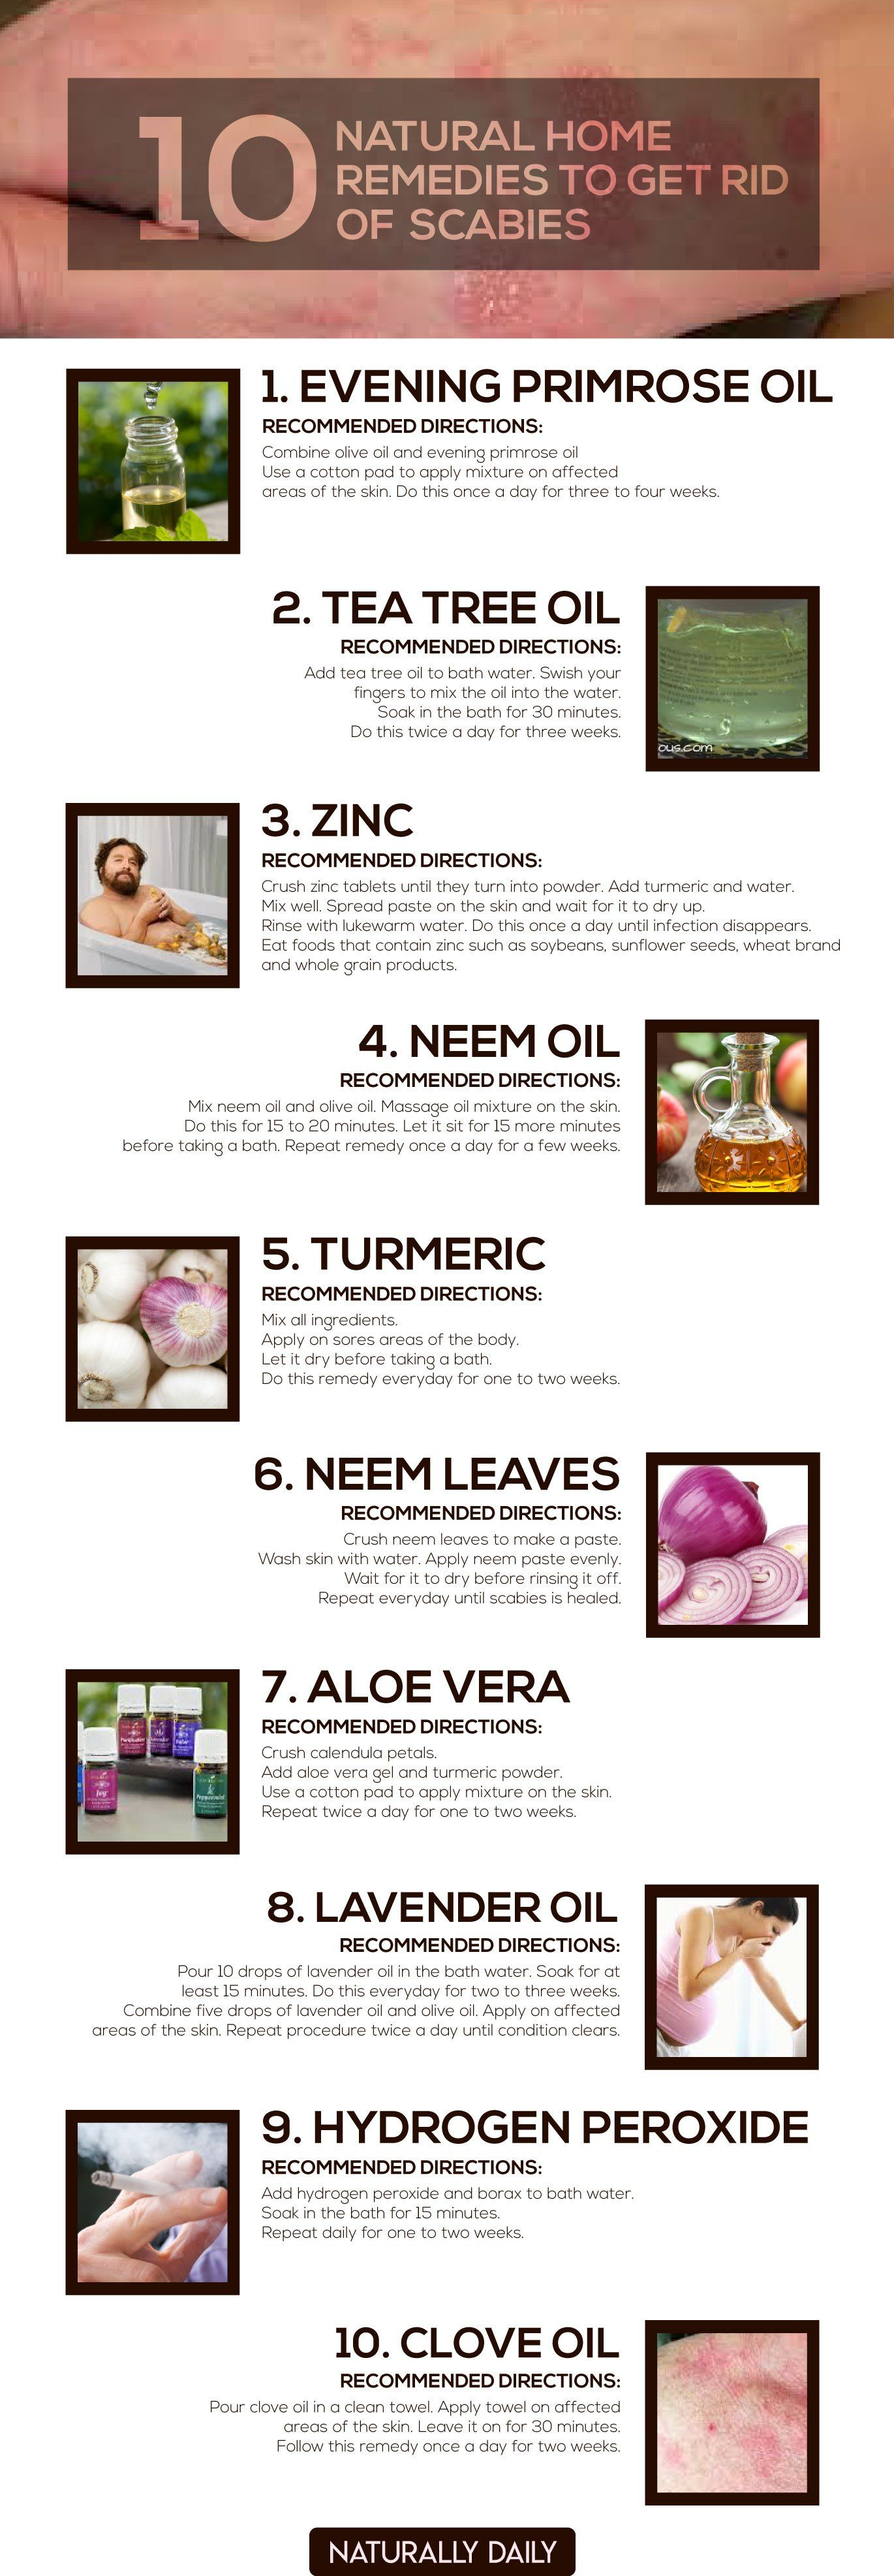 How To Treat Eczema Naturally With Simple Home Remedies Scabies Treatment